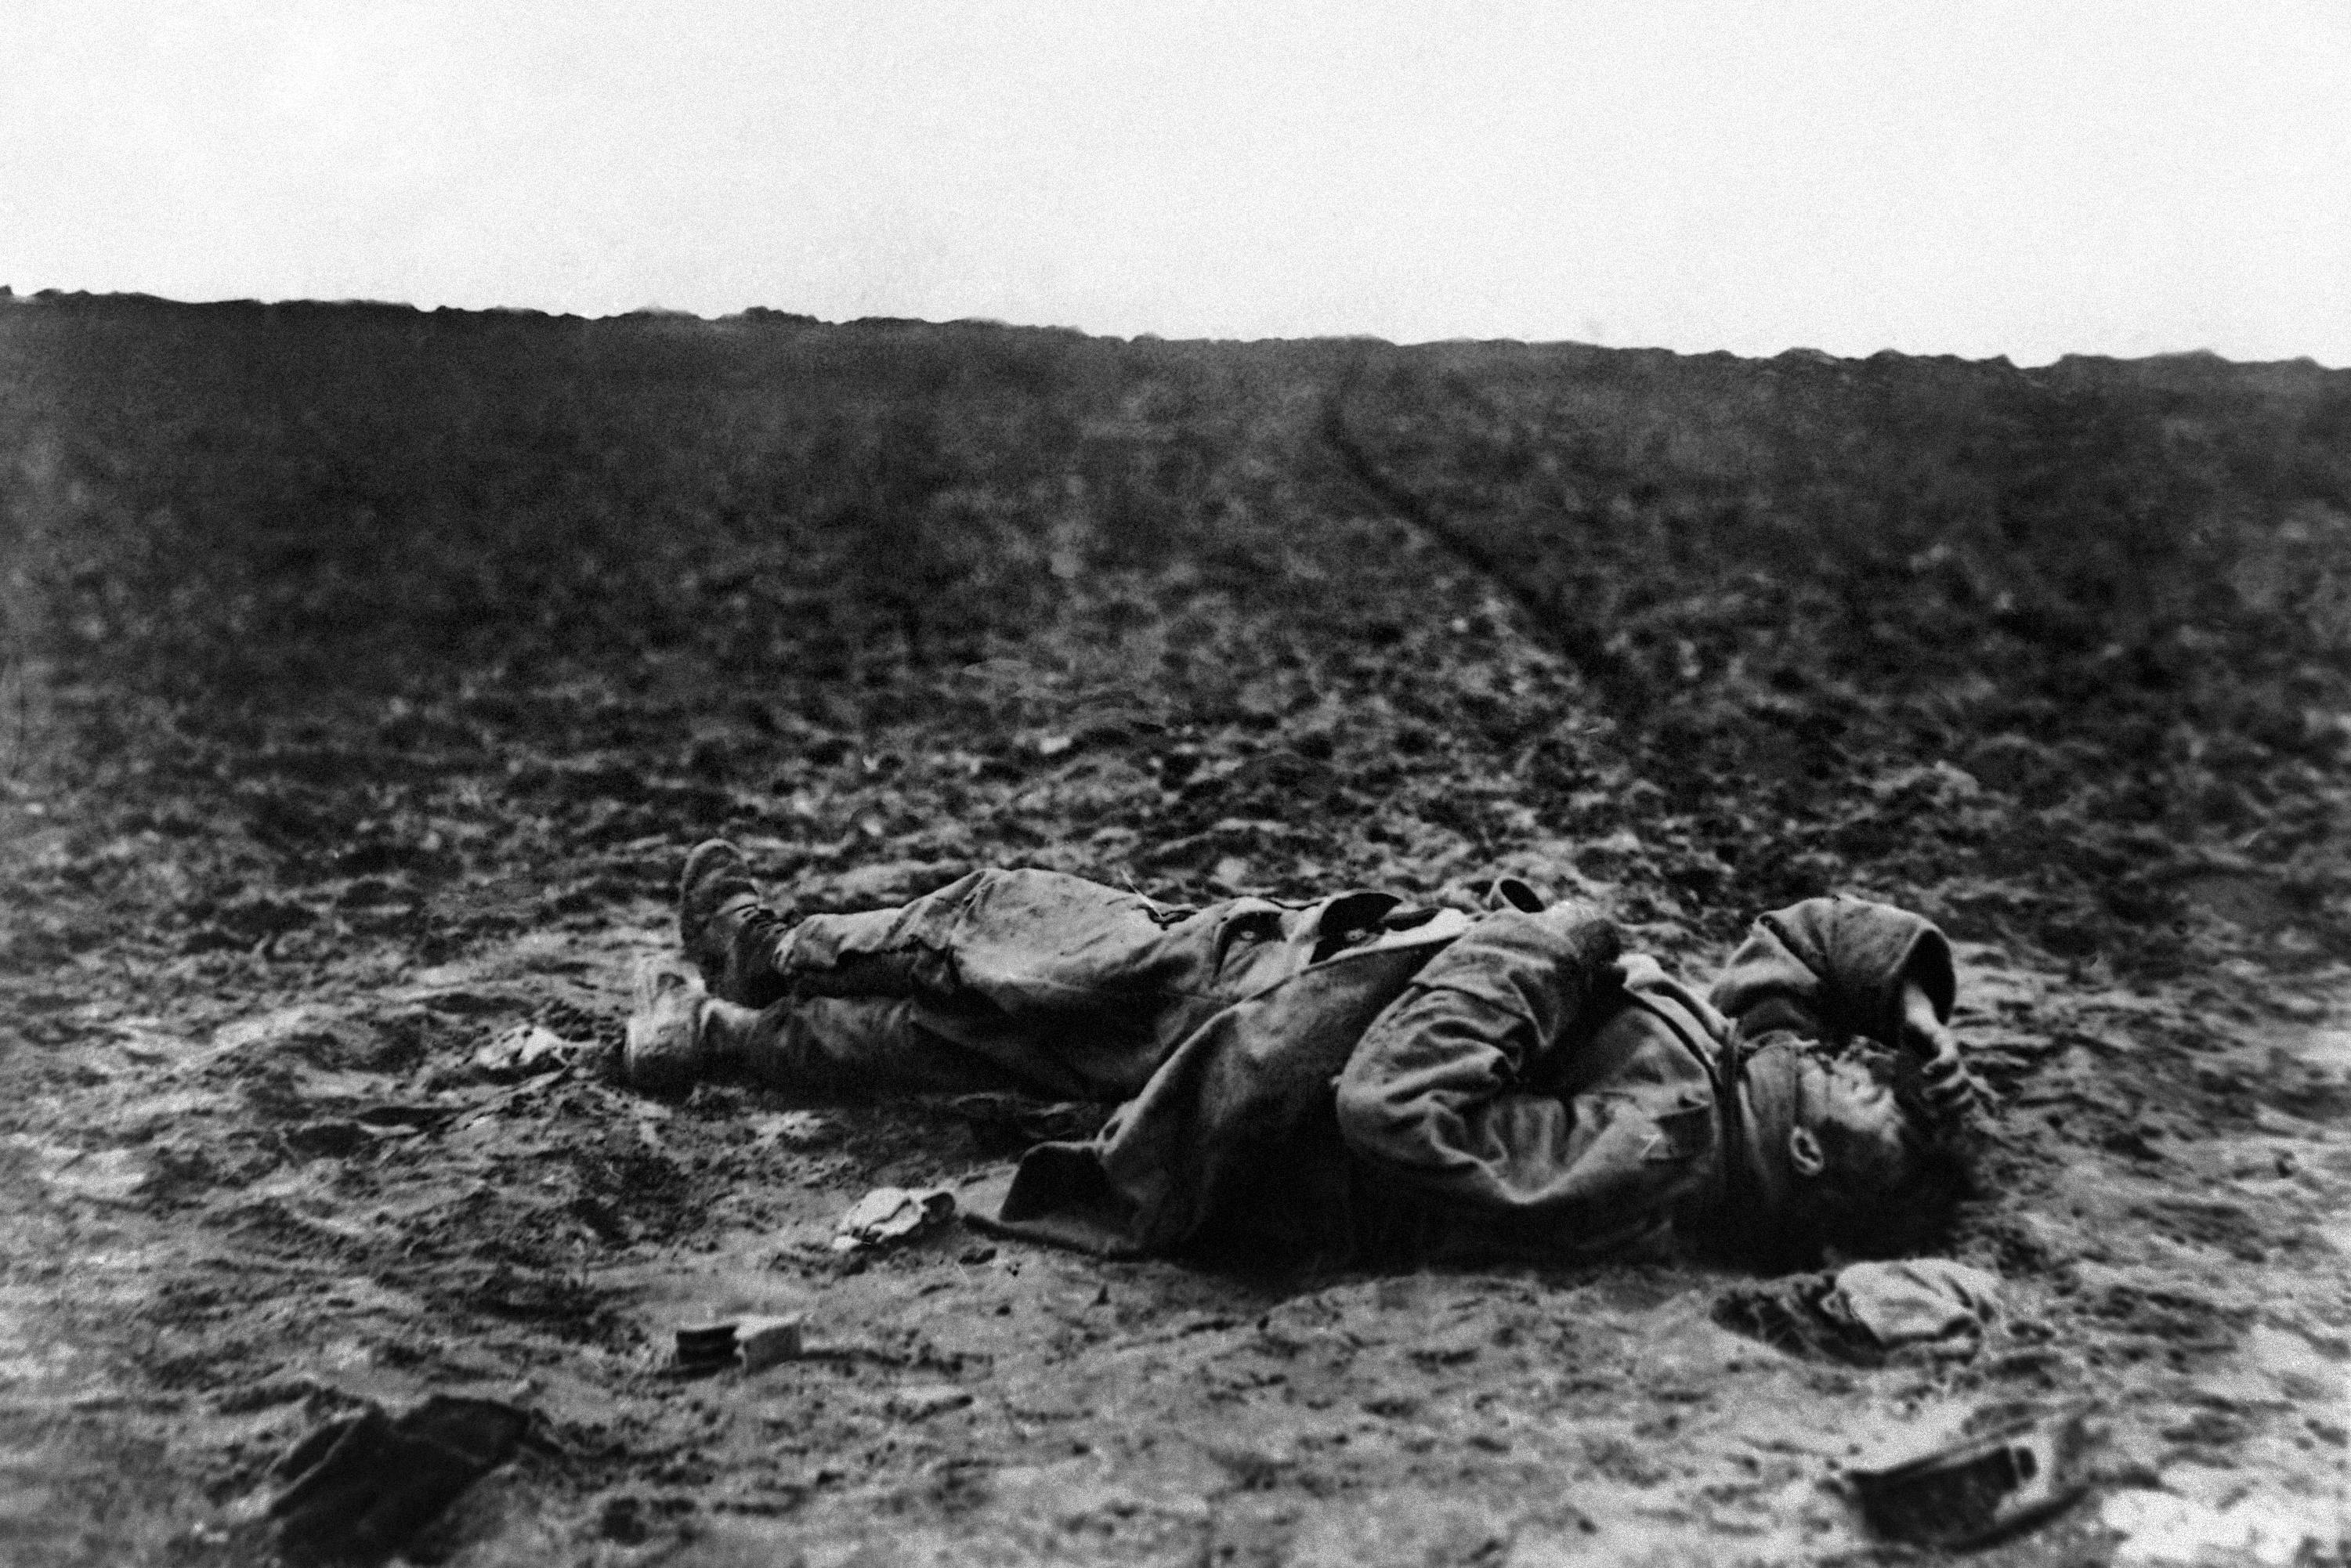 27 OF 100: A lone wounded Austrian soldier lies on the field of battle during World War I in an undated photo.